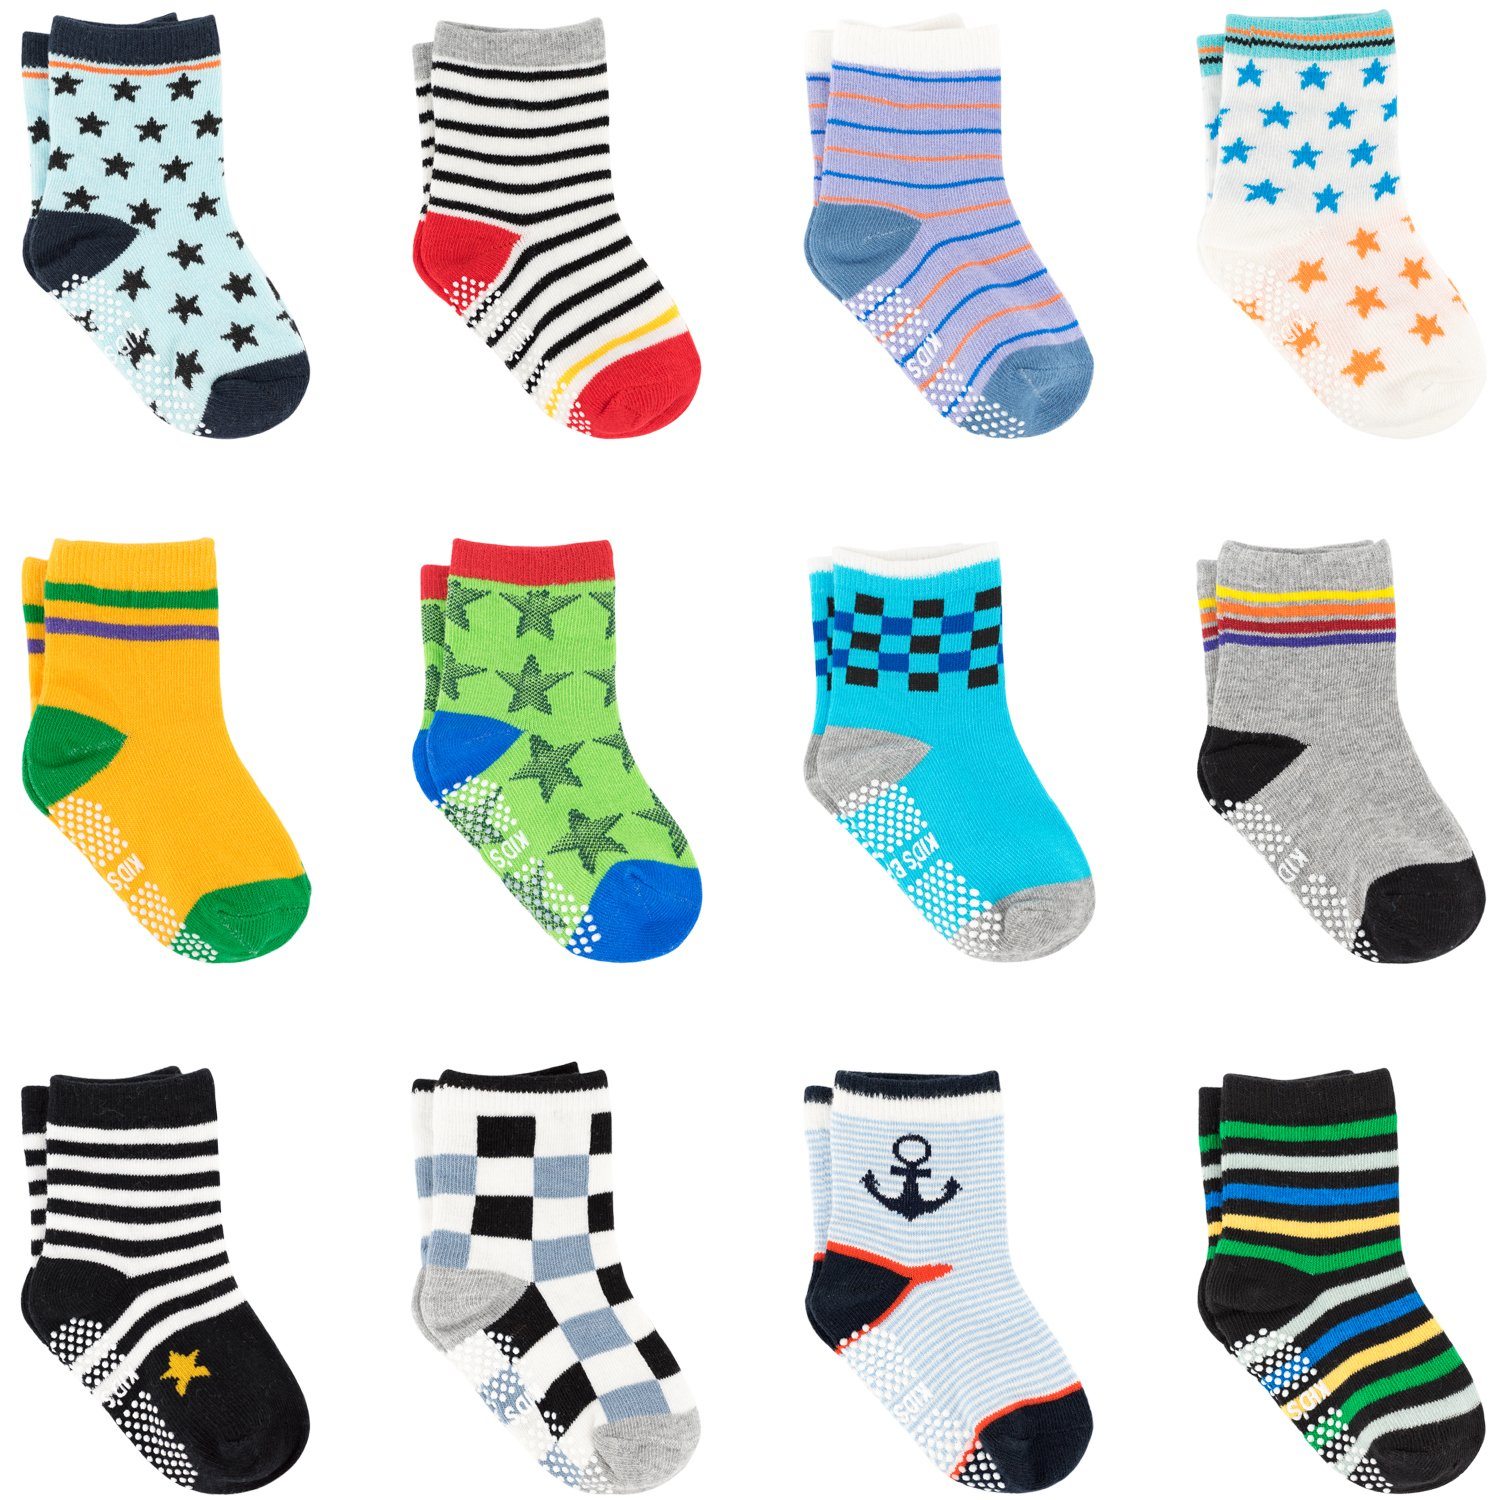 Ateid Toddlers Baby Anti-Skid Socks with Grips Ankle Socks Cotton 1-3 Years Pack of 12